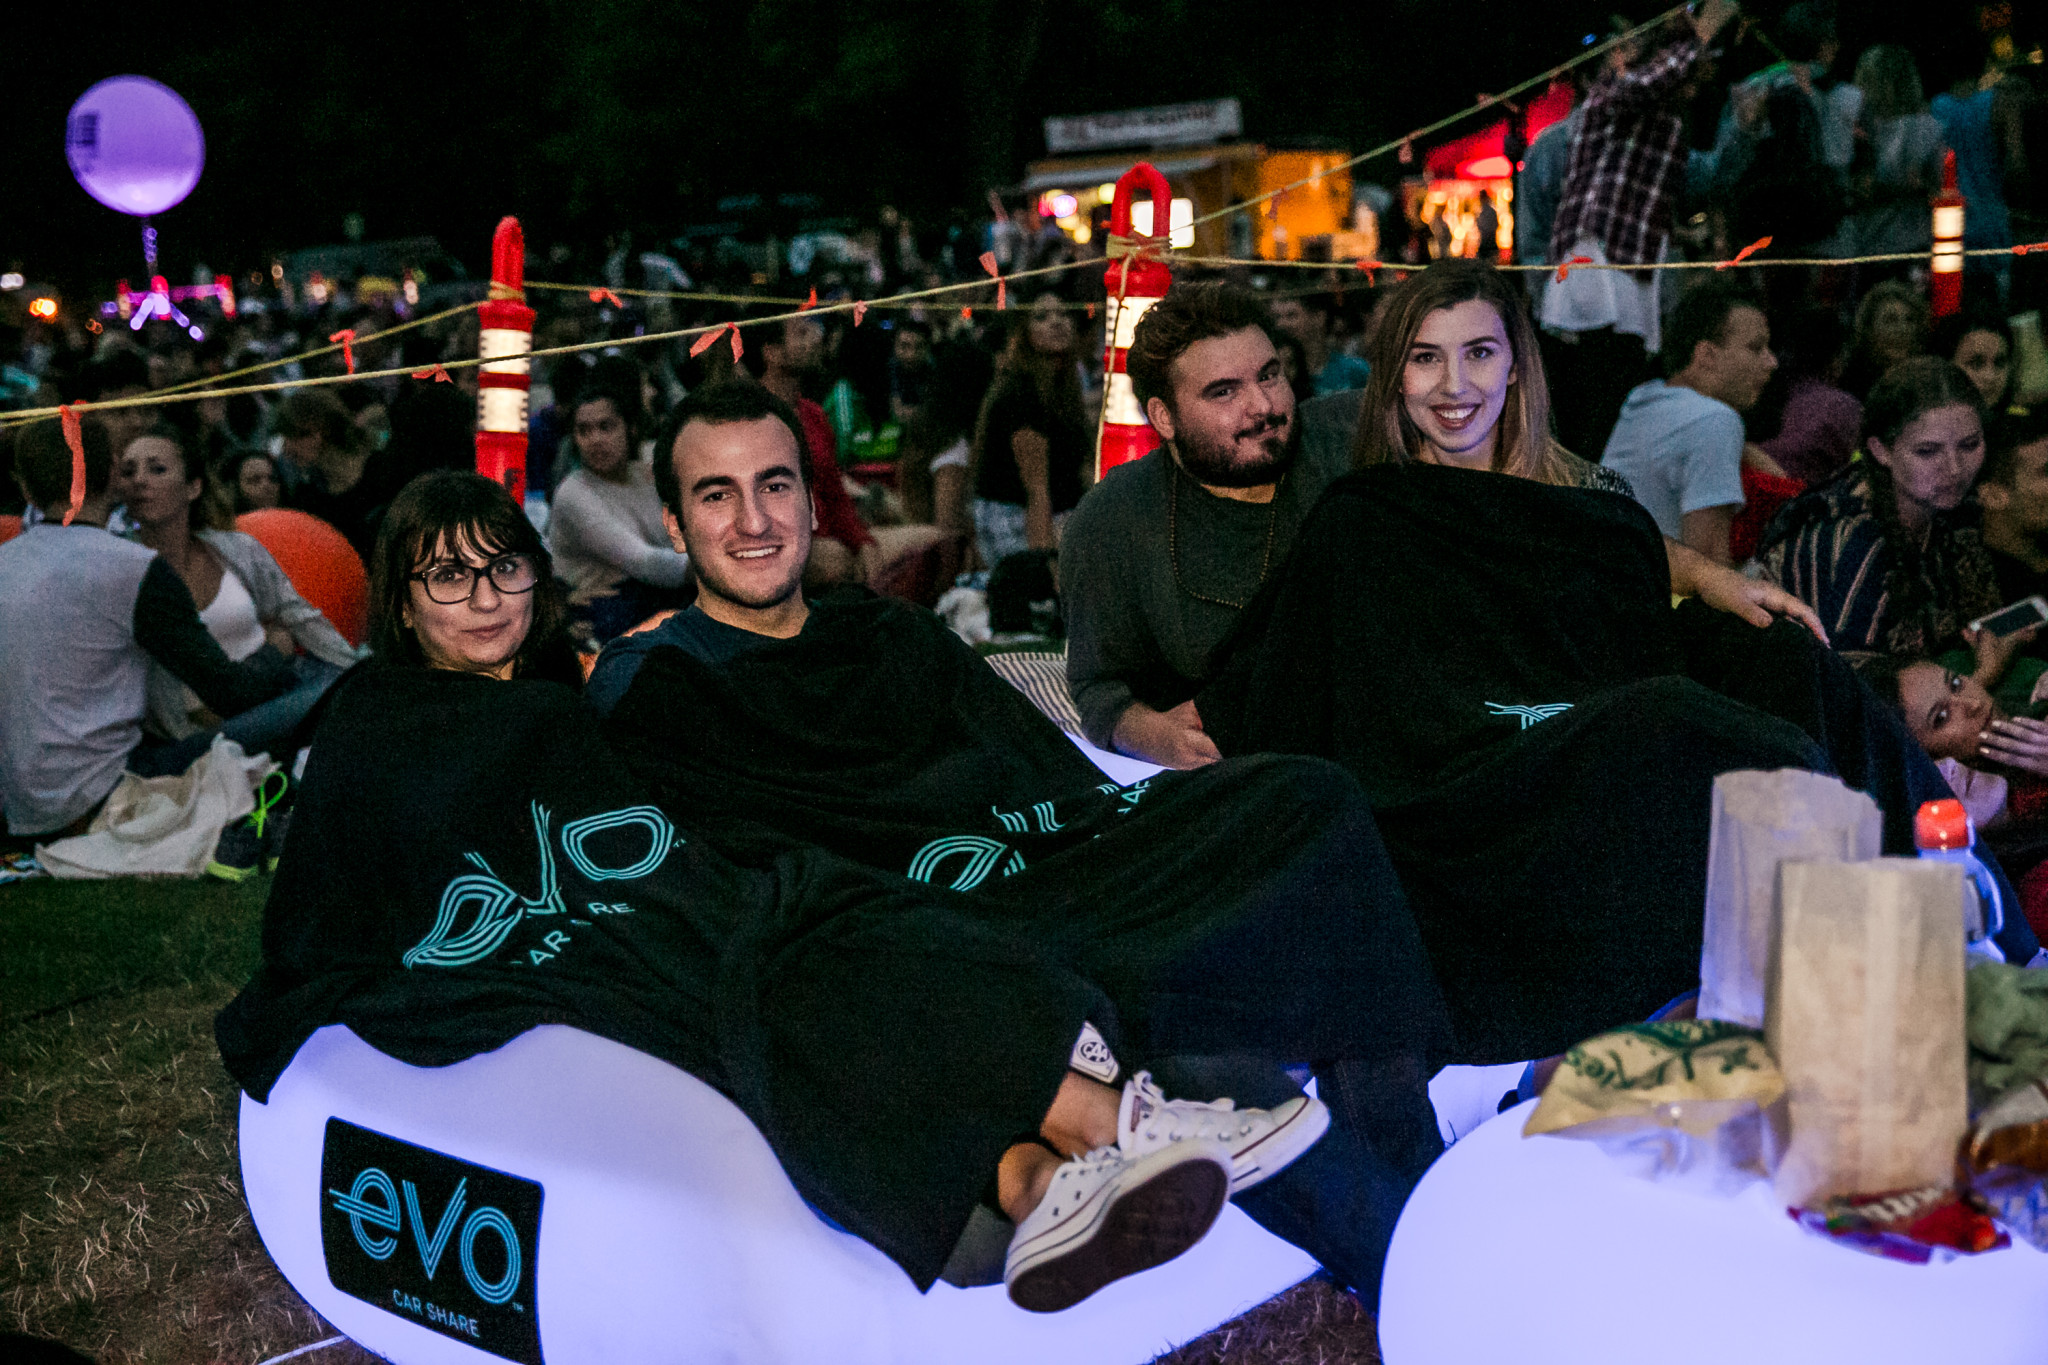 evo_movienight-0395